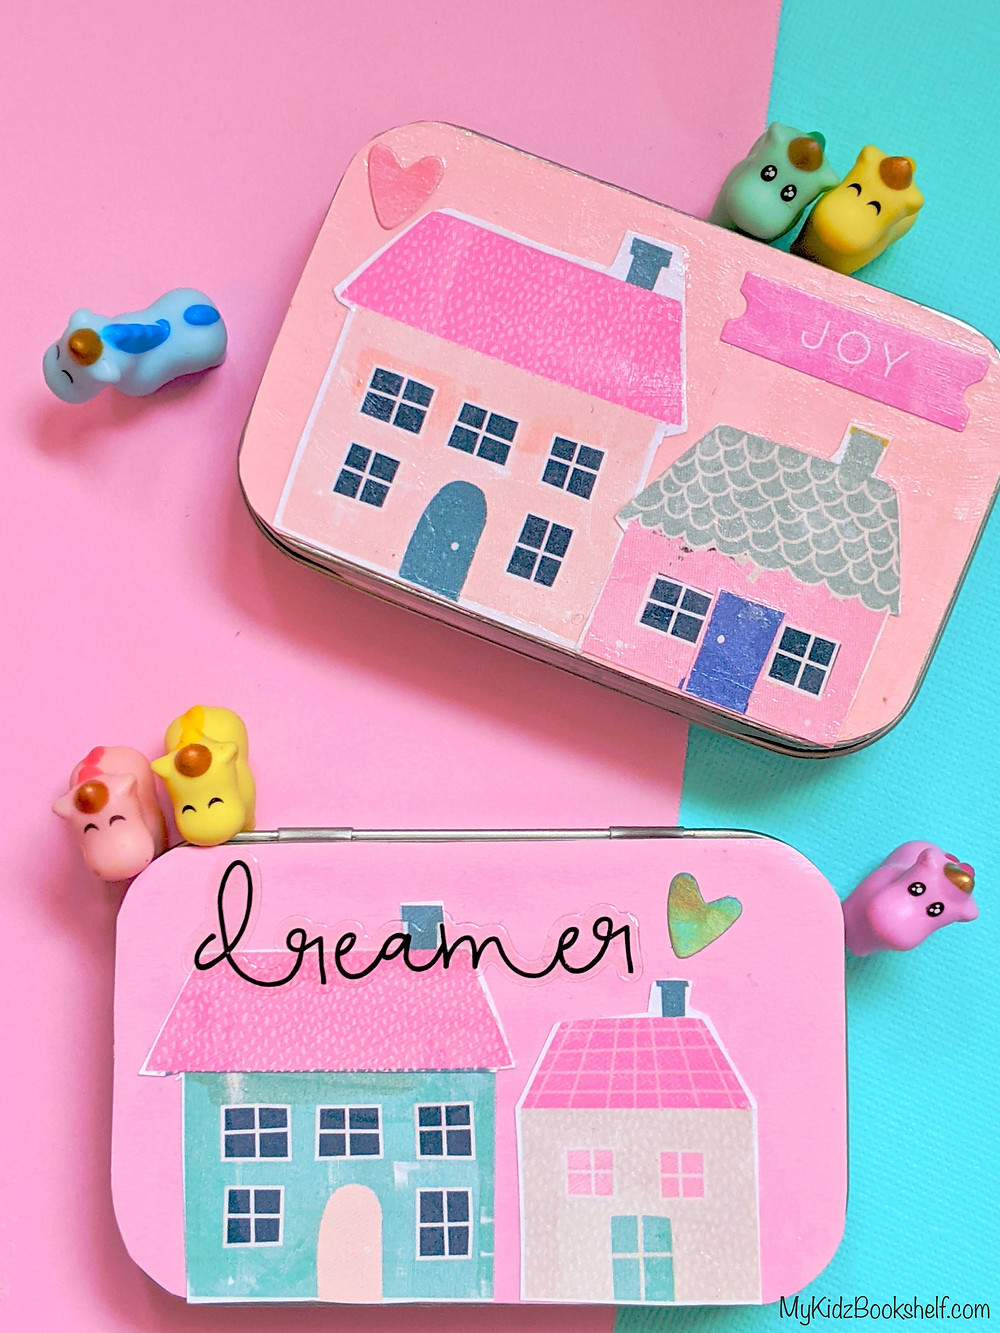 DIY Tiny House Tin box craft - a hinged tin with paper house images and words and hearts decoupaged onto cover with little unicorns around it